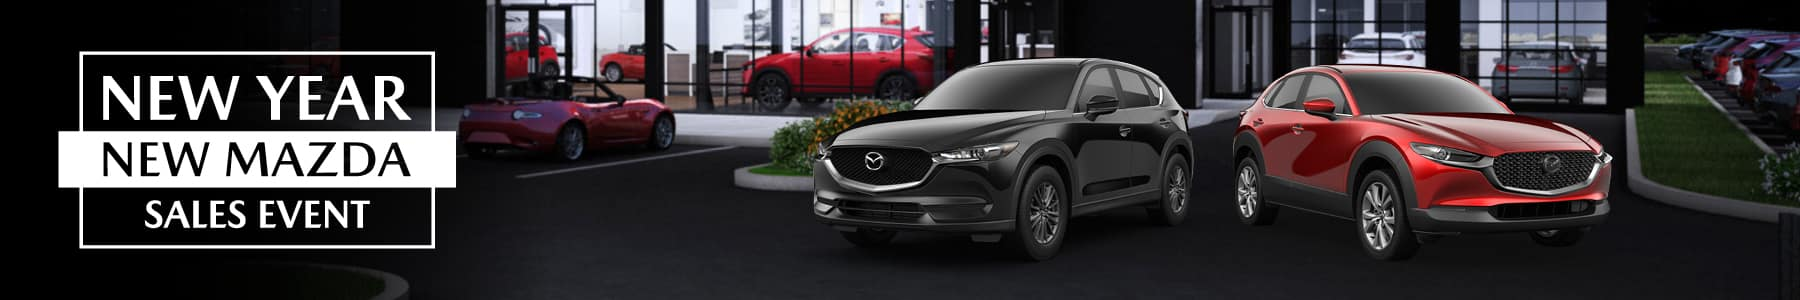 New year, new Mazda sales event. Happy new year from Gunther Mazda.